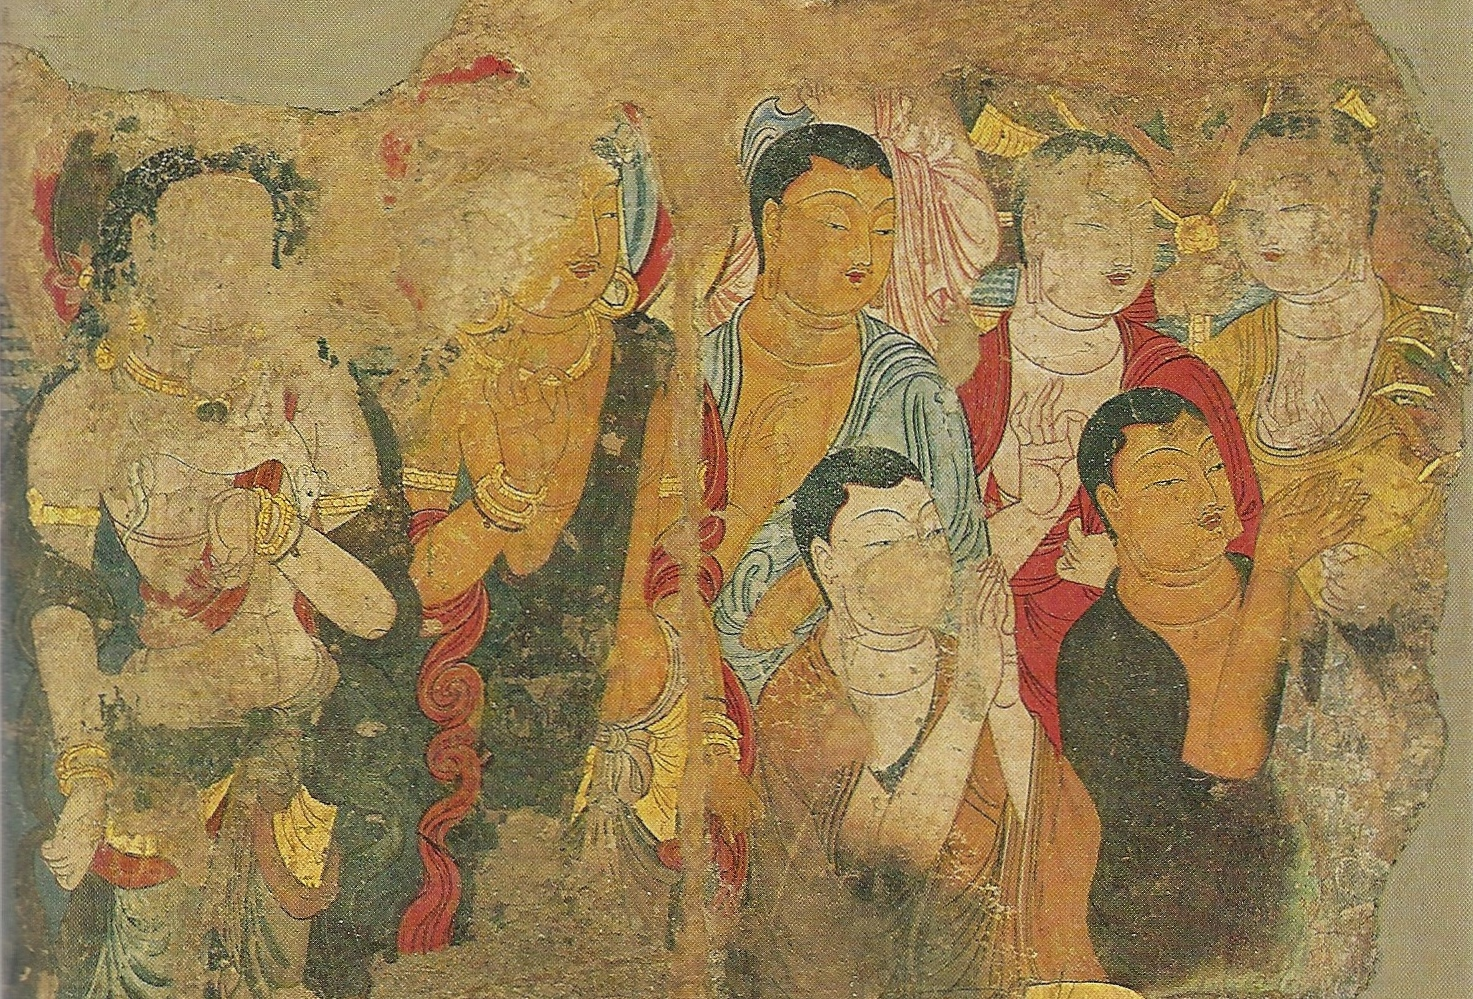 Expedition silk road treasures from the hermitage the for Chinese mural painting